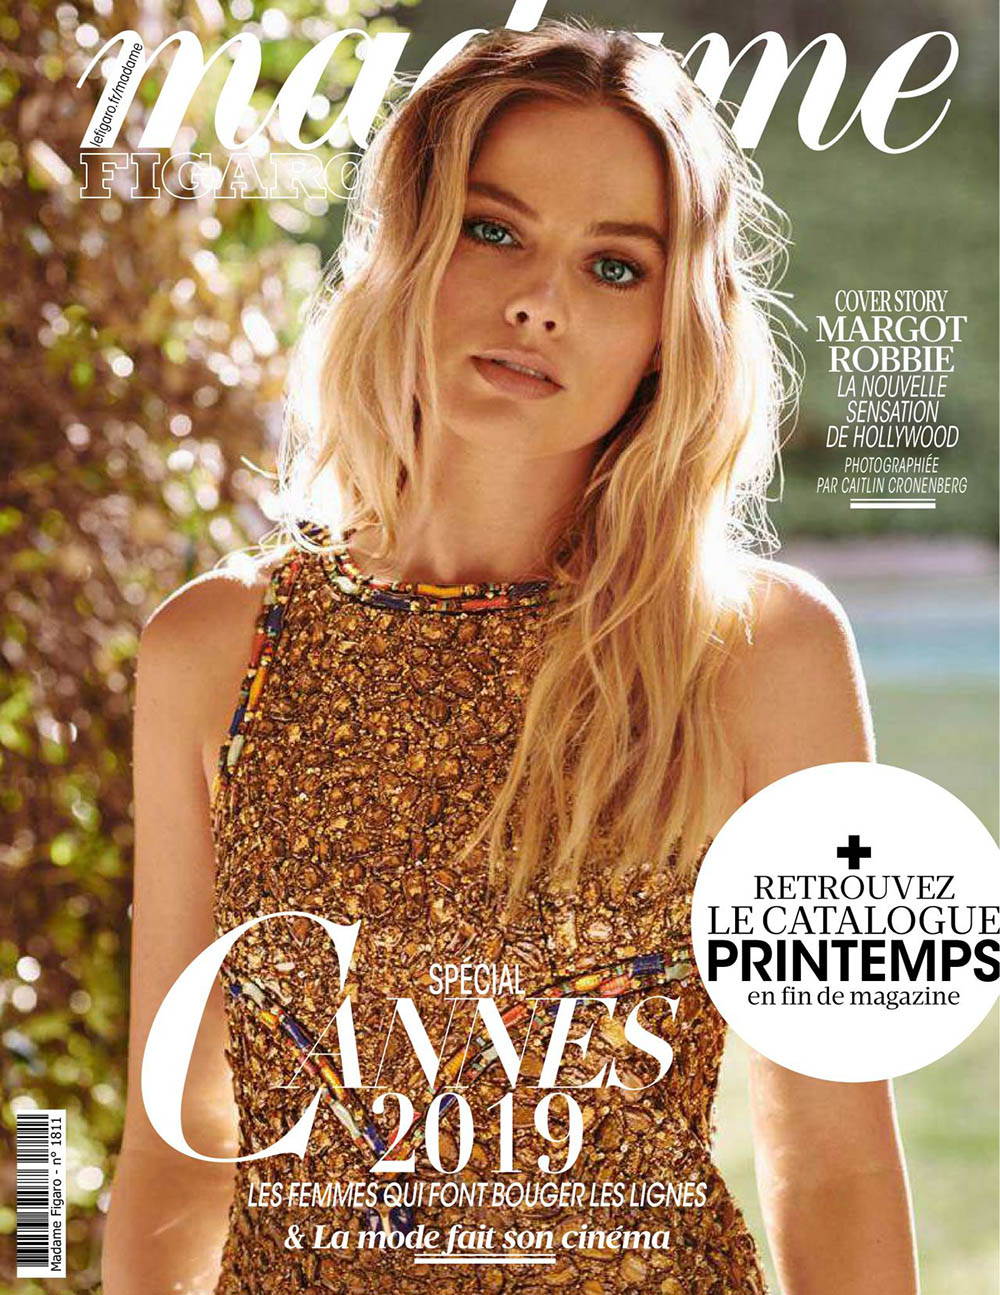 Margot Robbie covers Madame Figaro May 10th, 2019 by Caitlin Cronenberg